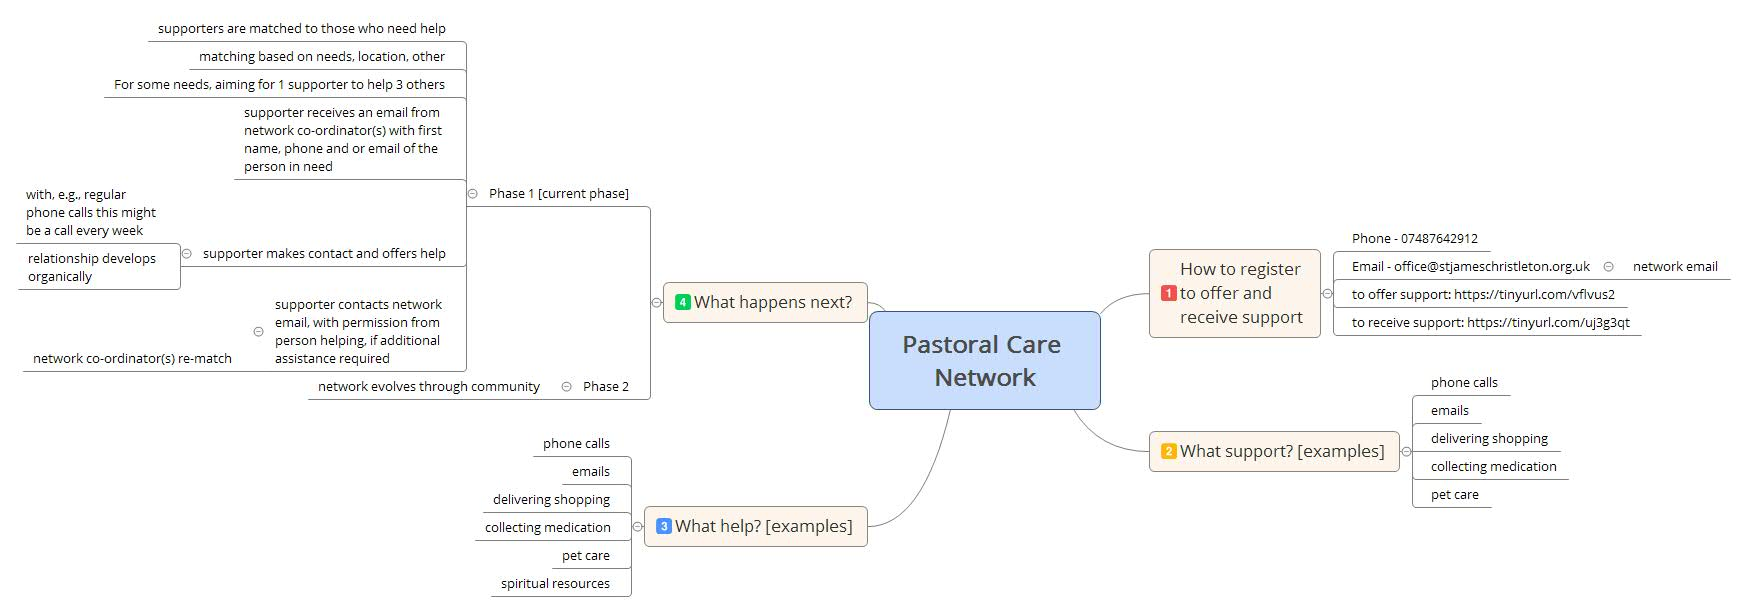 How the pastoral care network works